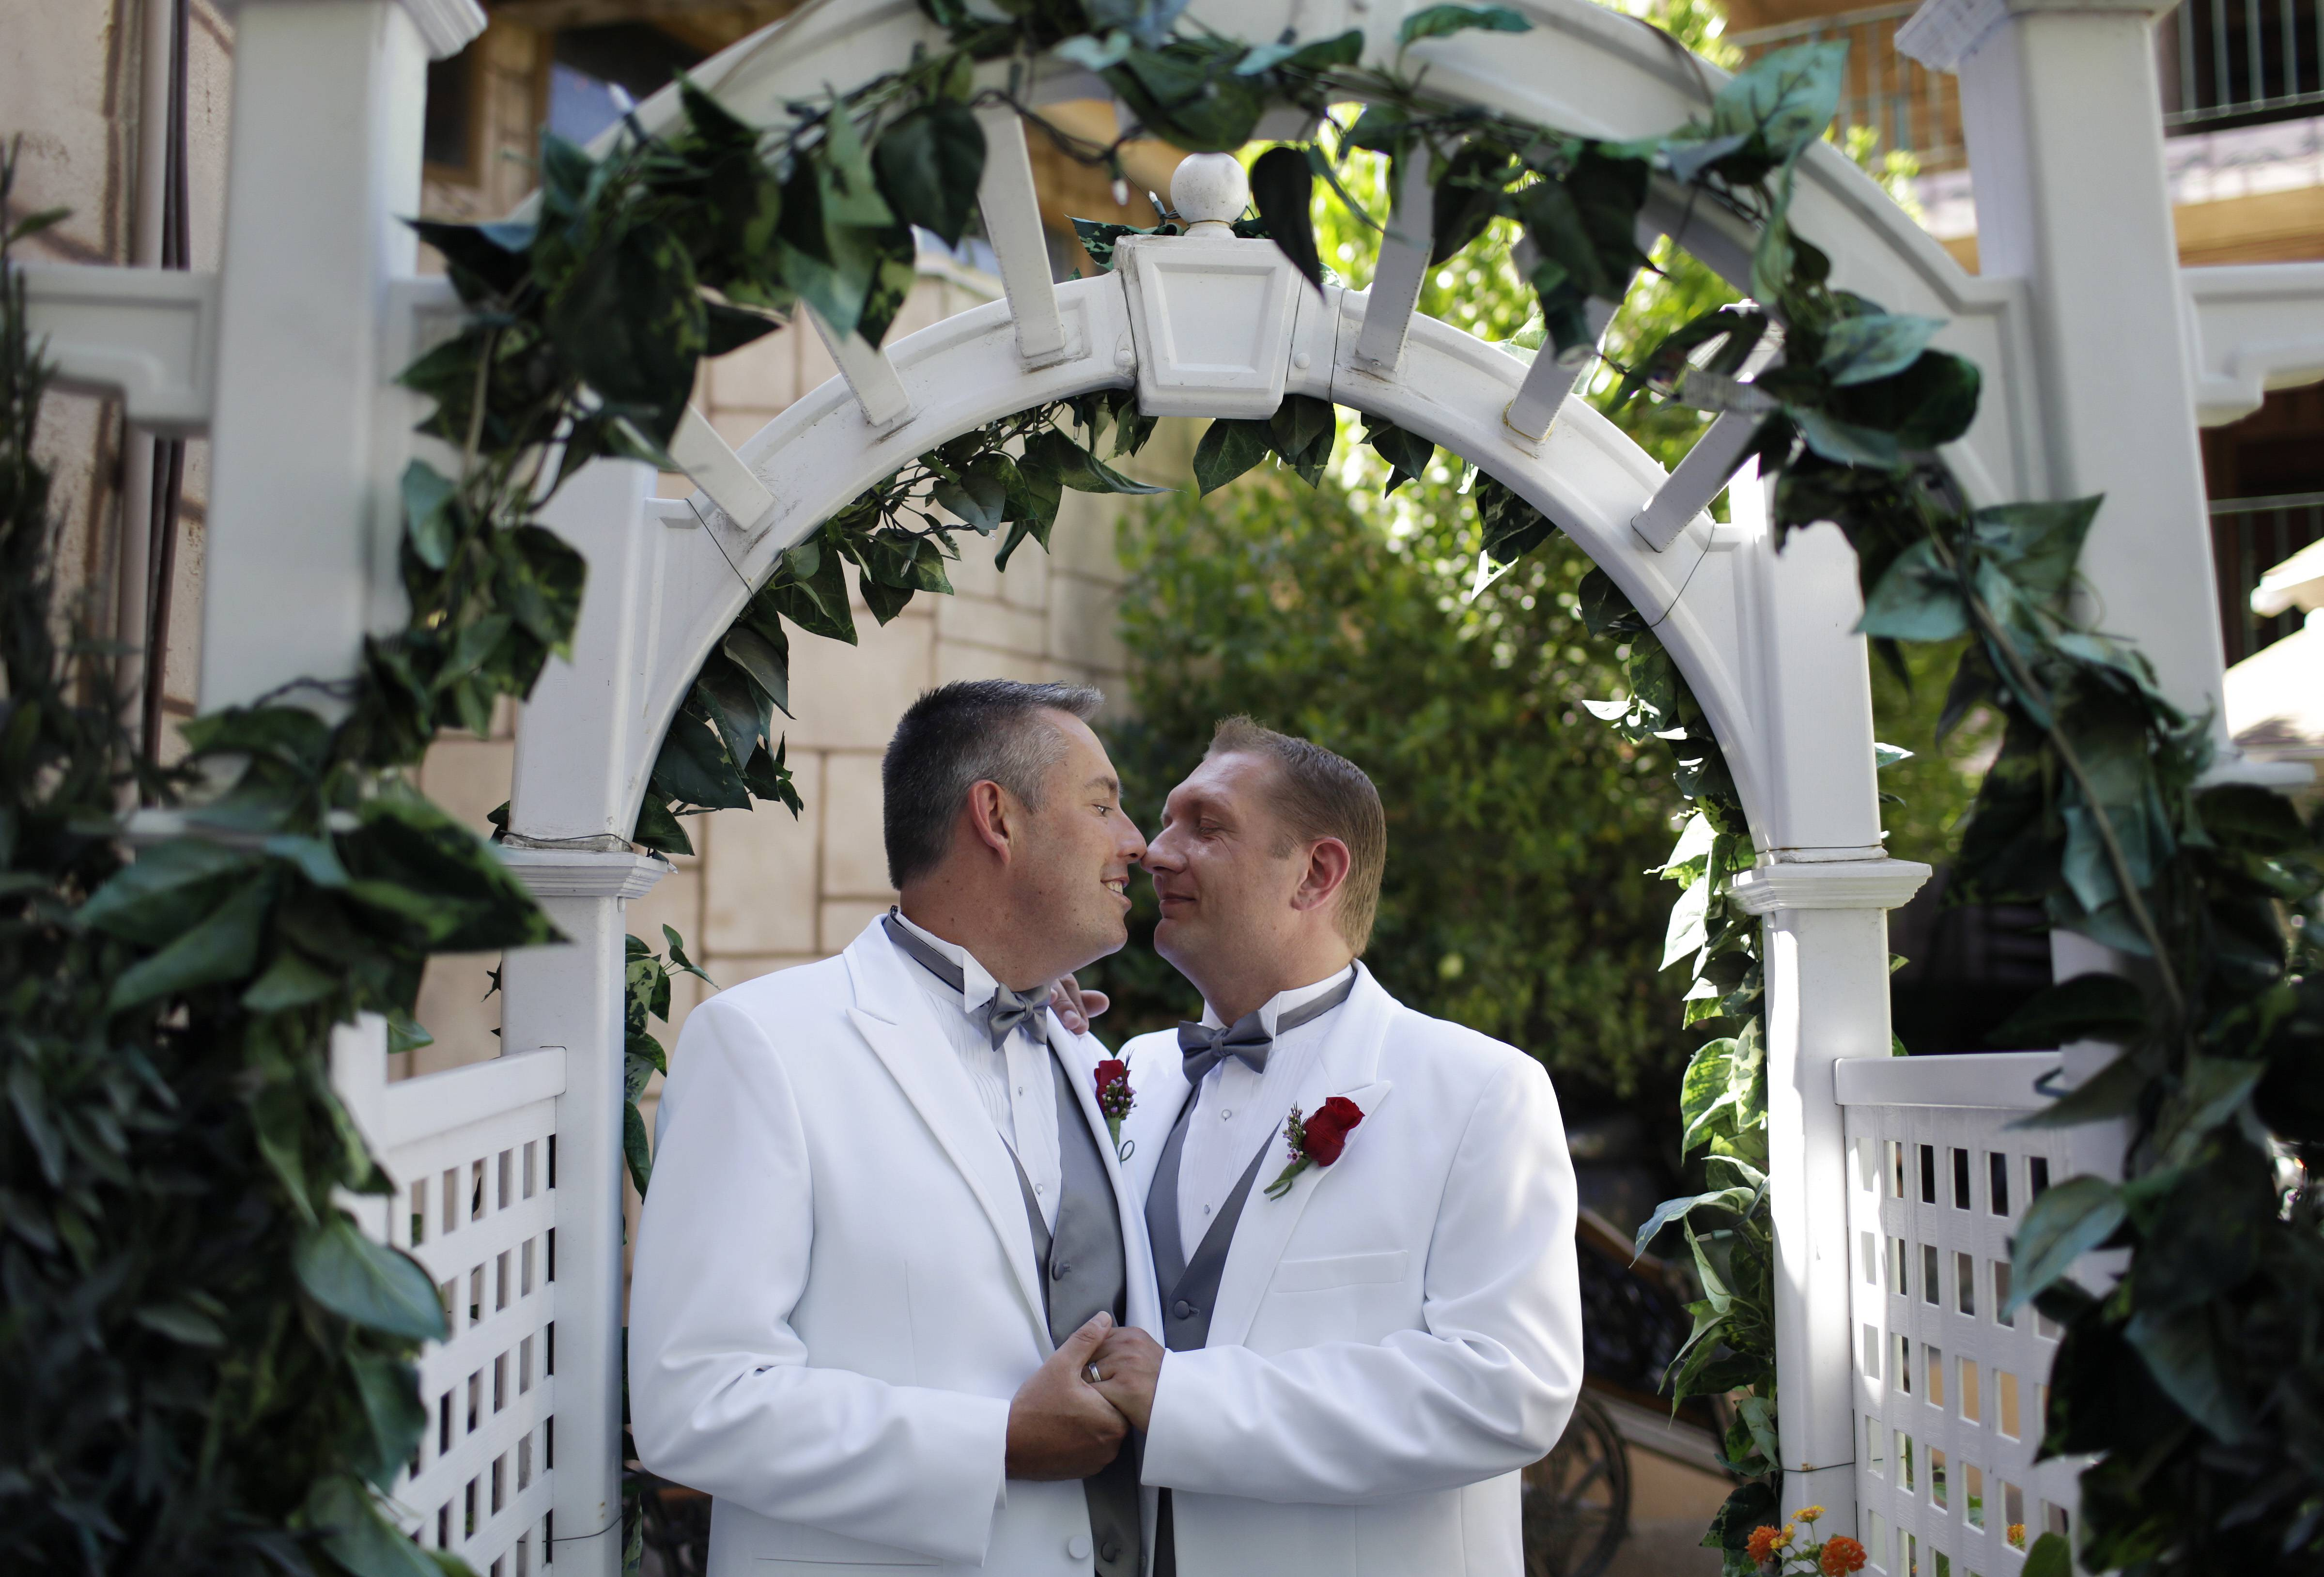 Vegas offering all but marriage to LGBT tourists